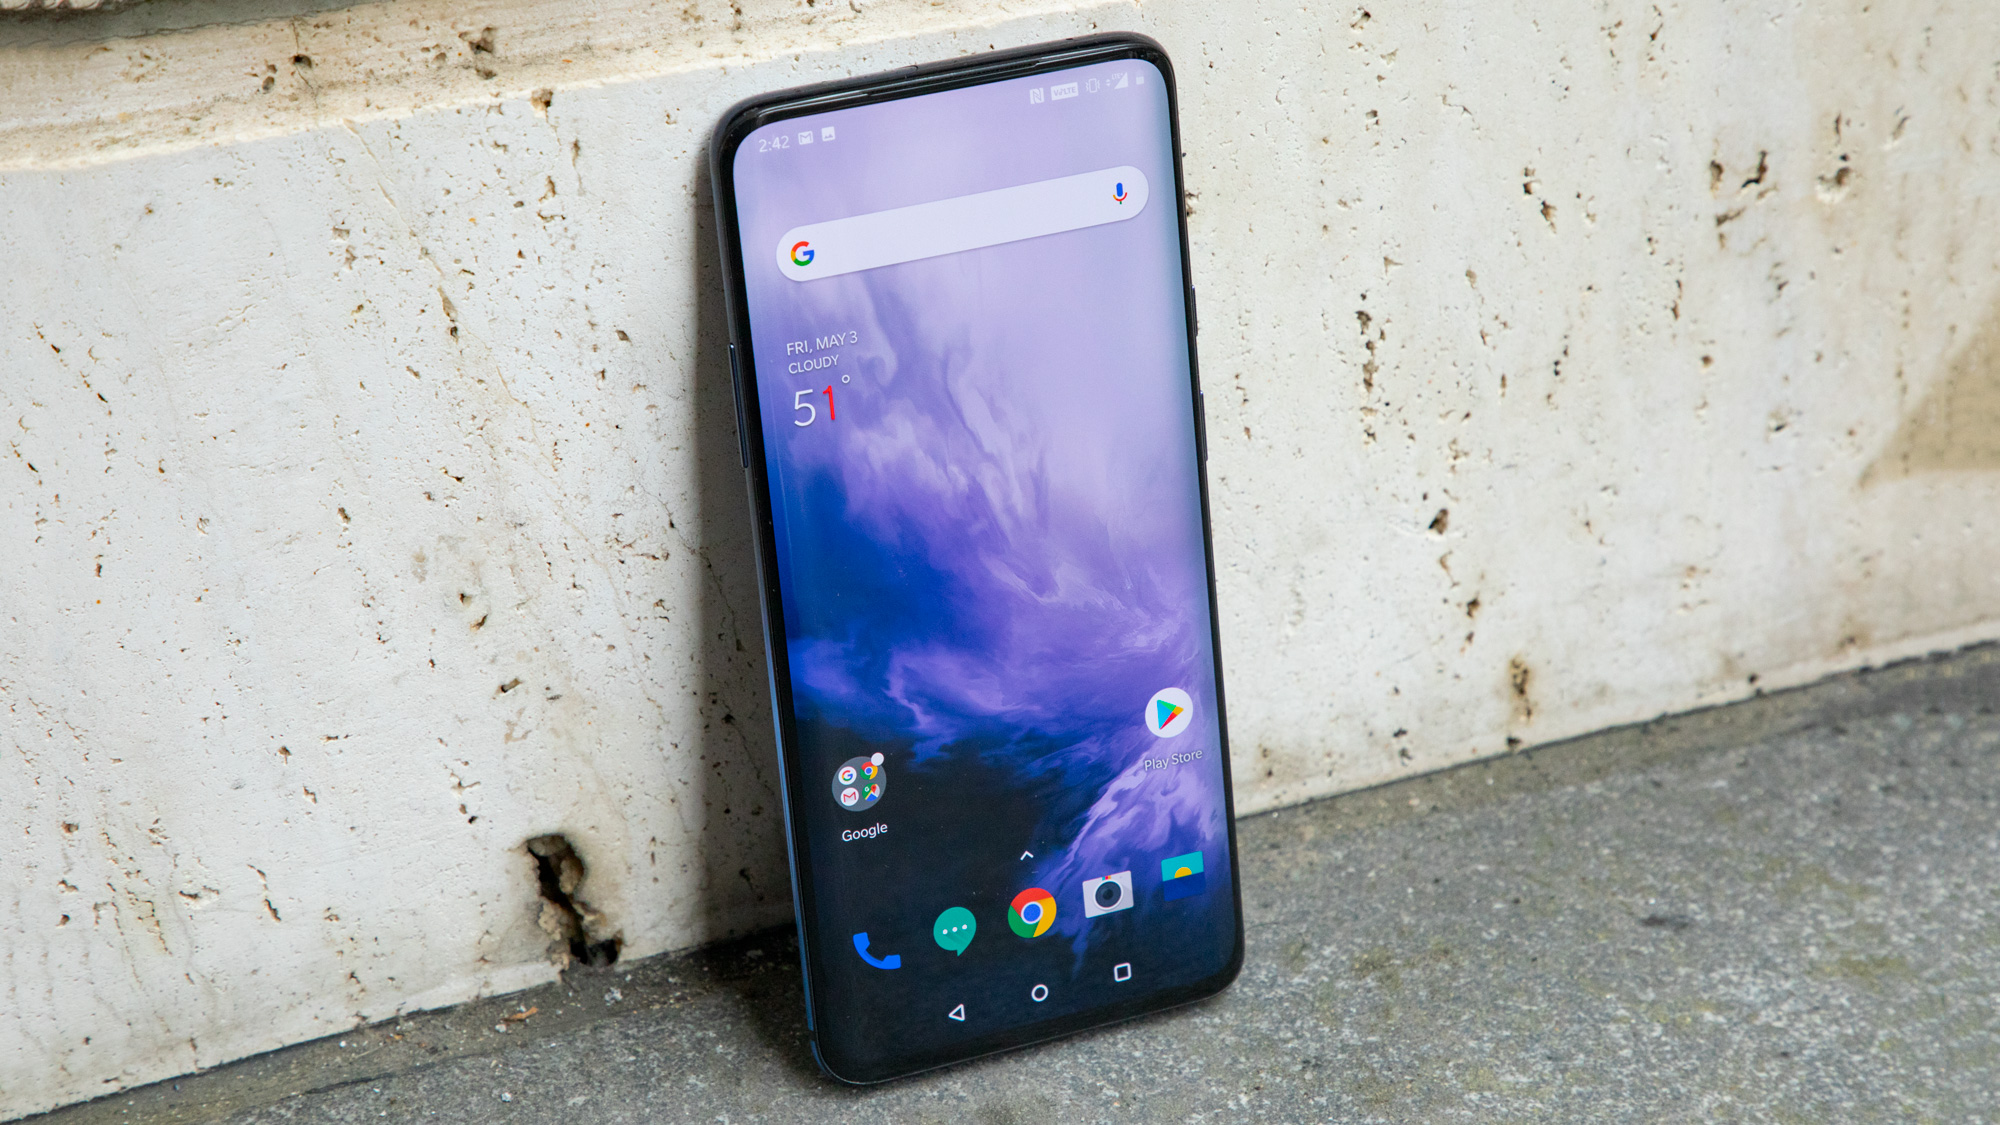 OnePlus reveals upcoming OxygenOS features including ultra-wide